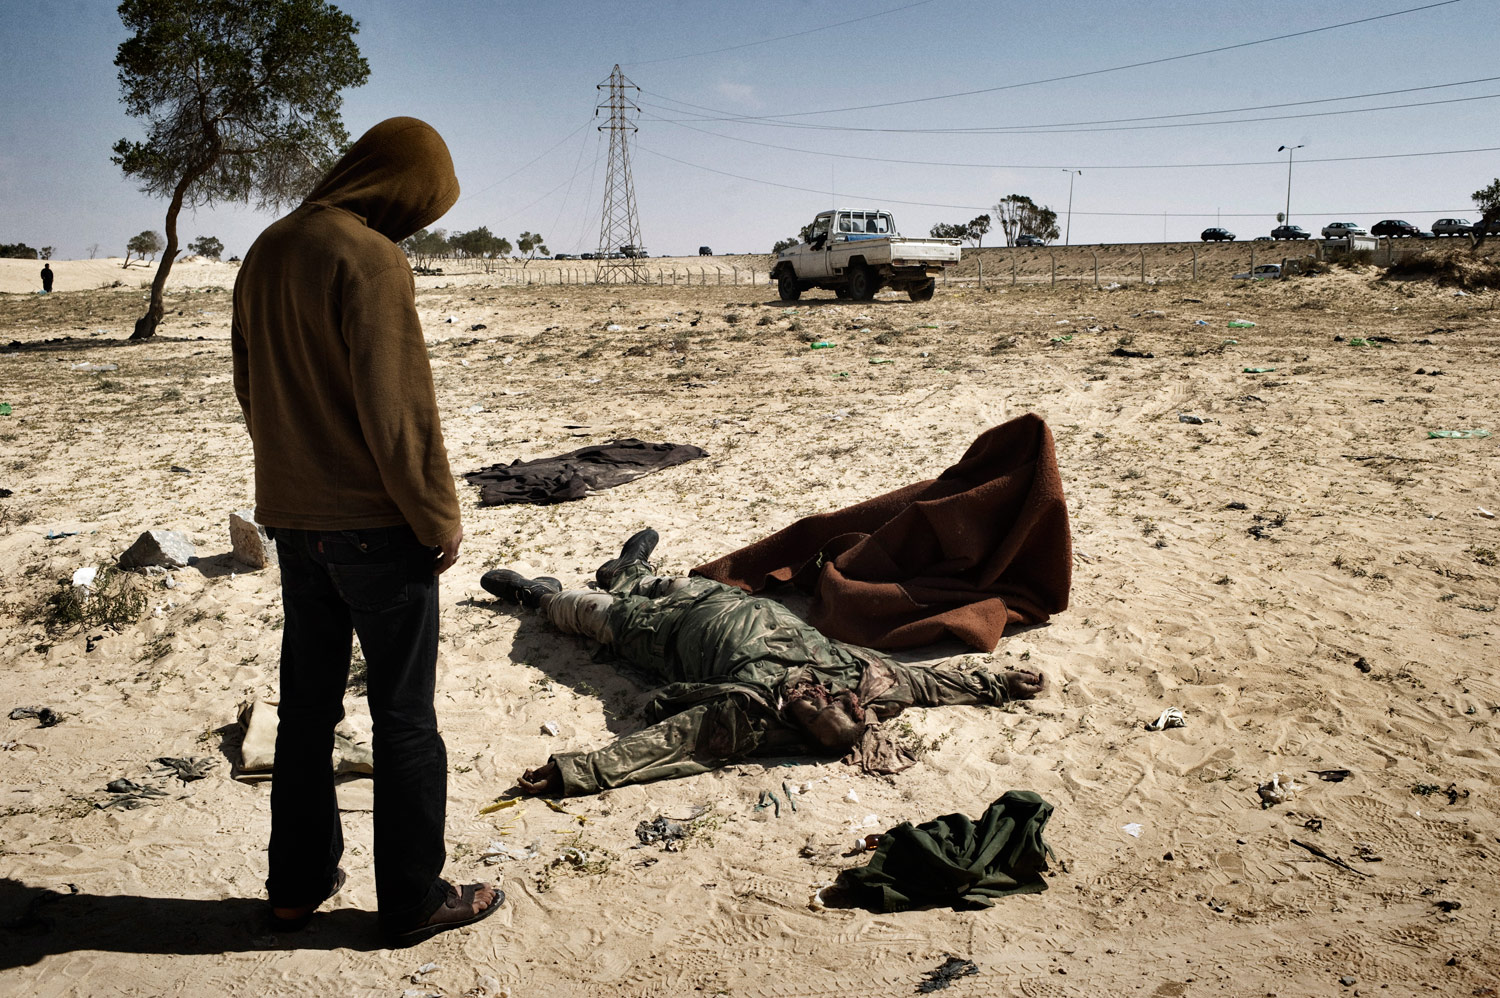 A Libyan rebel stands over the dead body of a Gaddafi soldier killed during an allied airstrike, March 26, 2011.